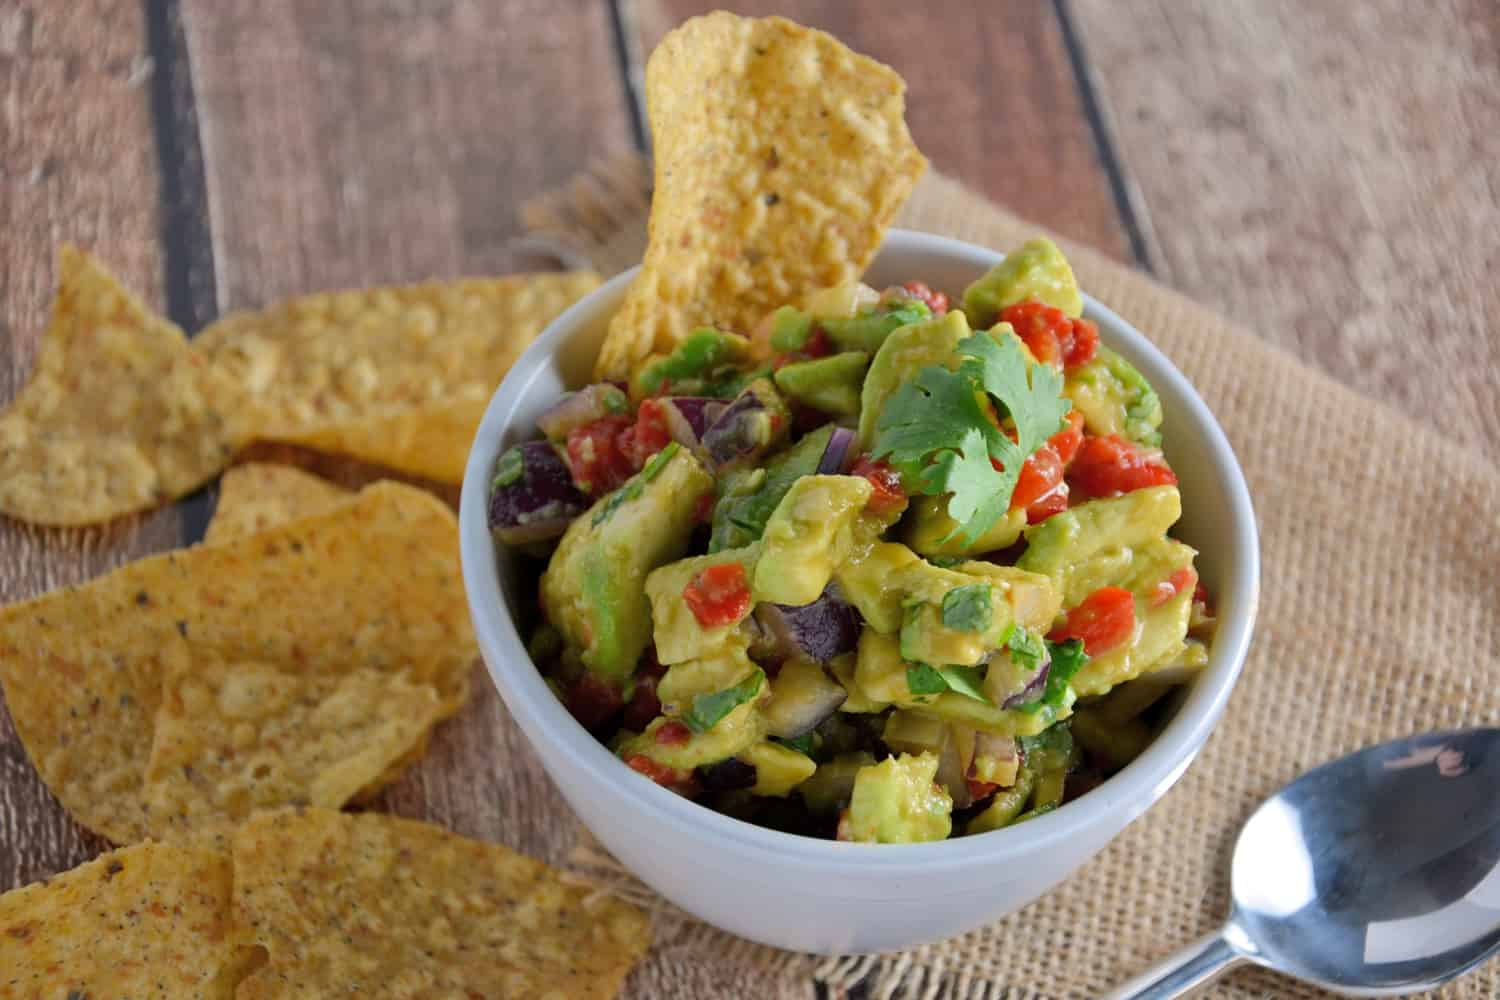 Avocado Chutney Recipe- use this simple and healthy chutney to top chicken, fish, steak or as an easy guacamole!